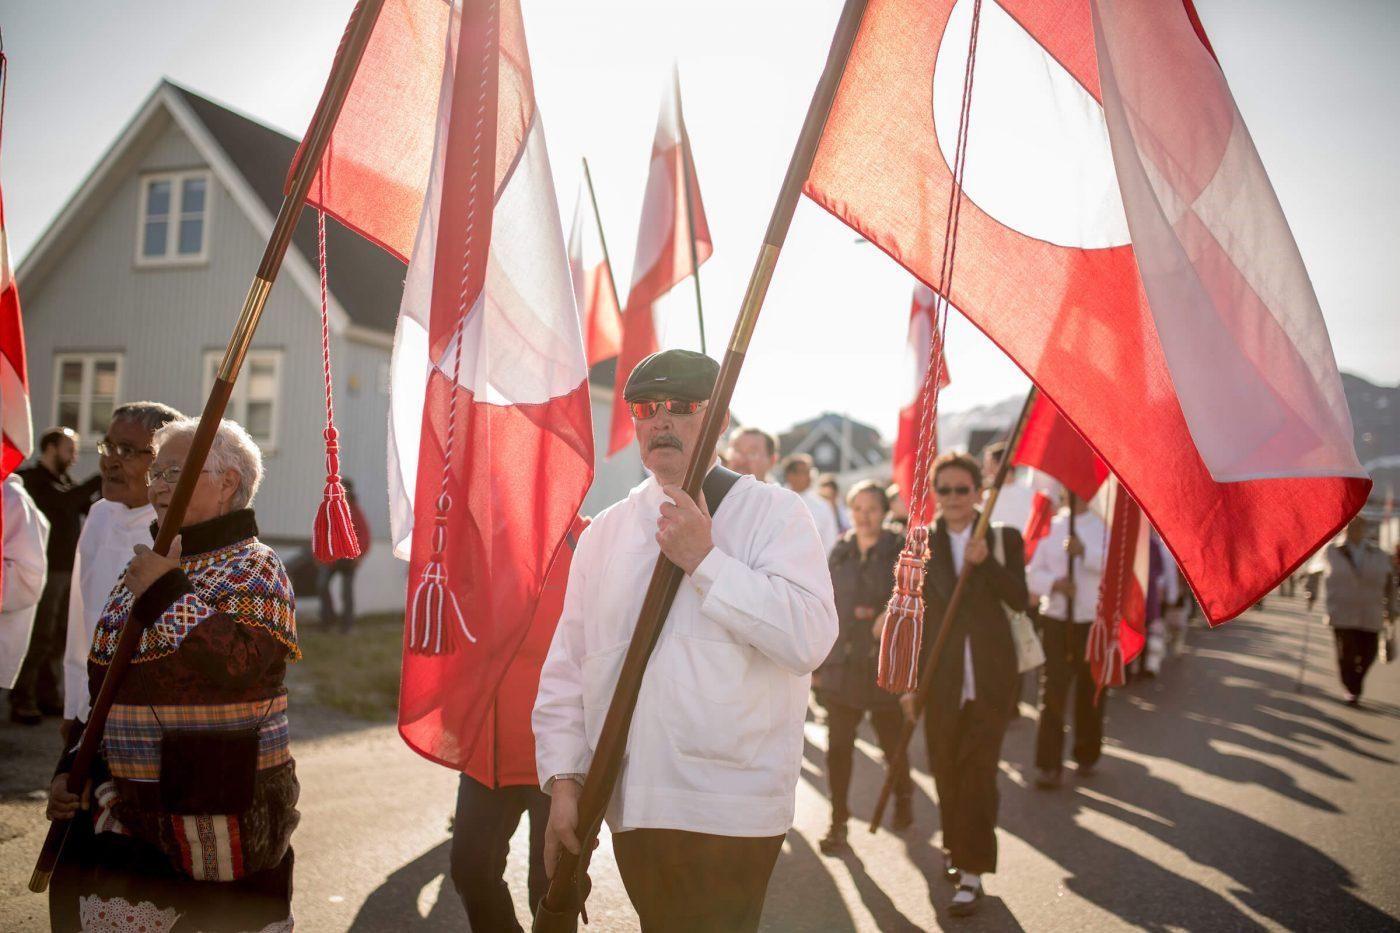 Flag bearers at the National Day Parade in Nuuk in Greenland on June 21, by Mads Pihl